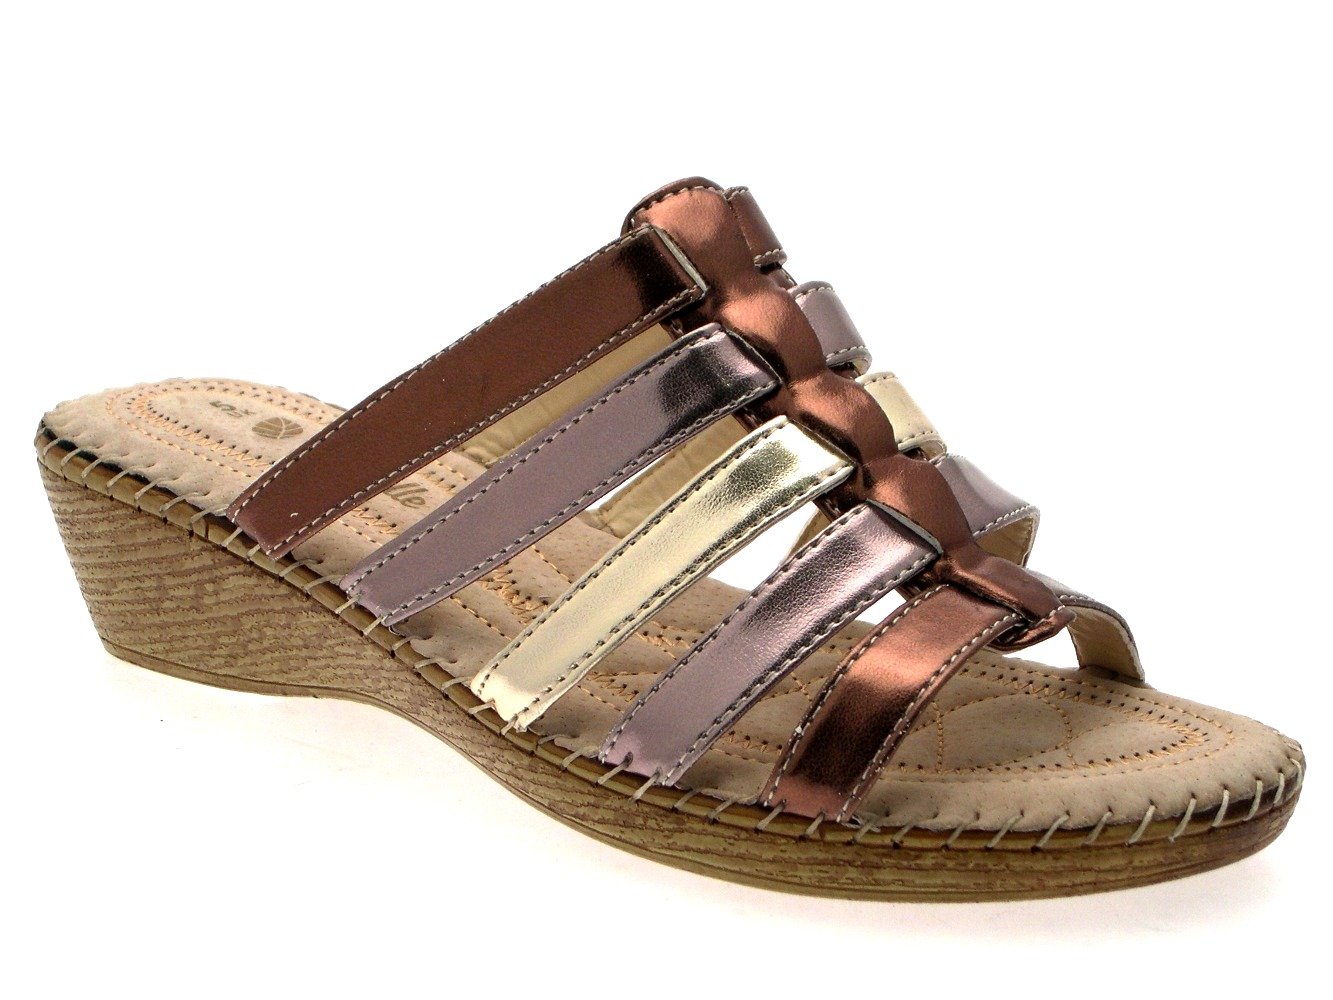 WOMENS COMFORT LOW WEDGES STRAPPY SANDALS MULES LADIES ...